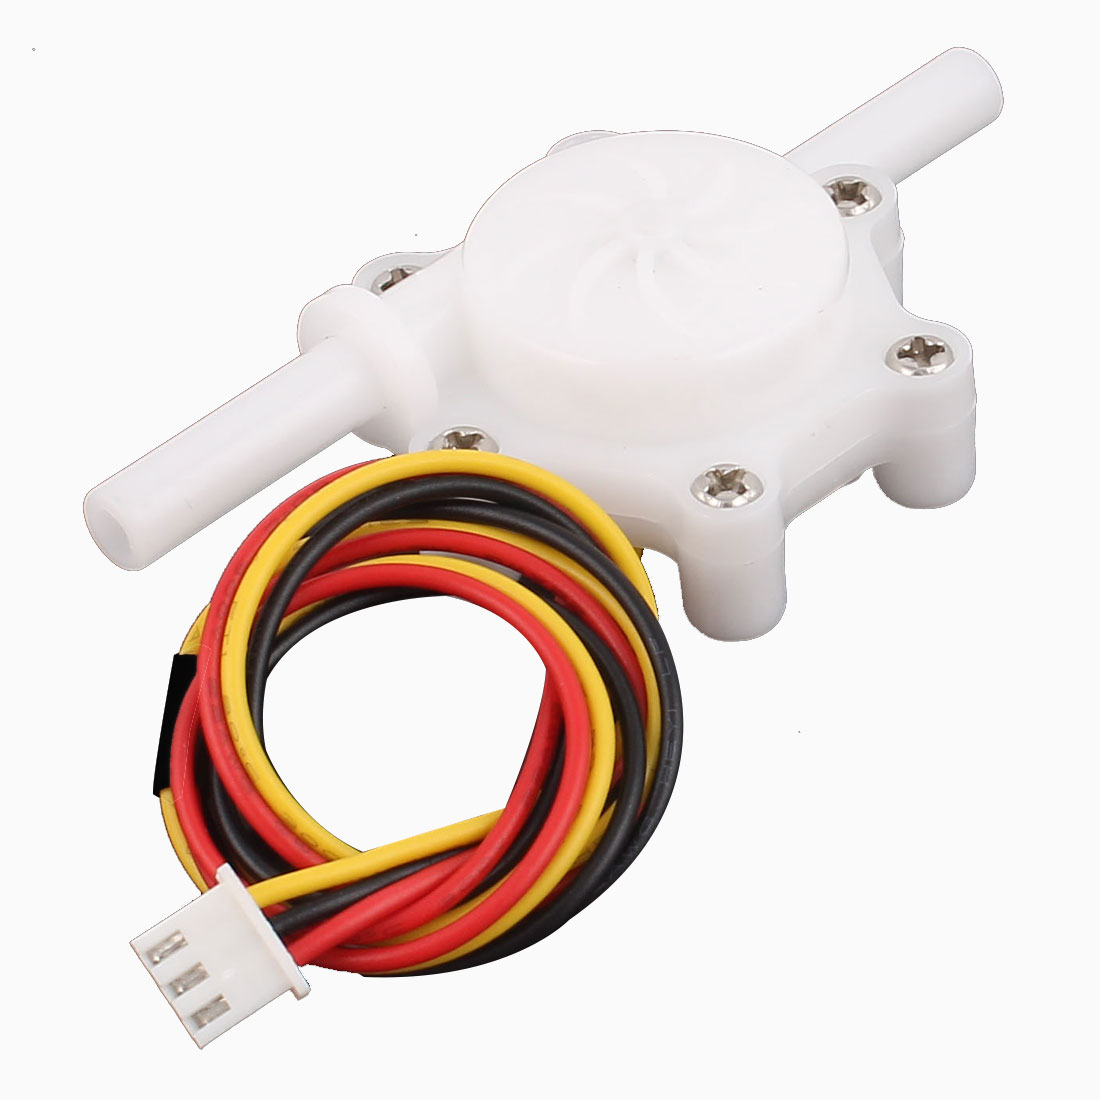 0.3-3.0L/min 6mm Outlet Outer Dia Water Flow Counter Sensor SEN-HZ06K